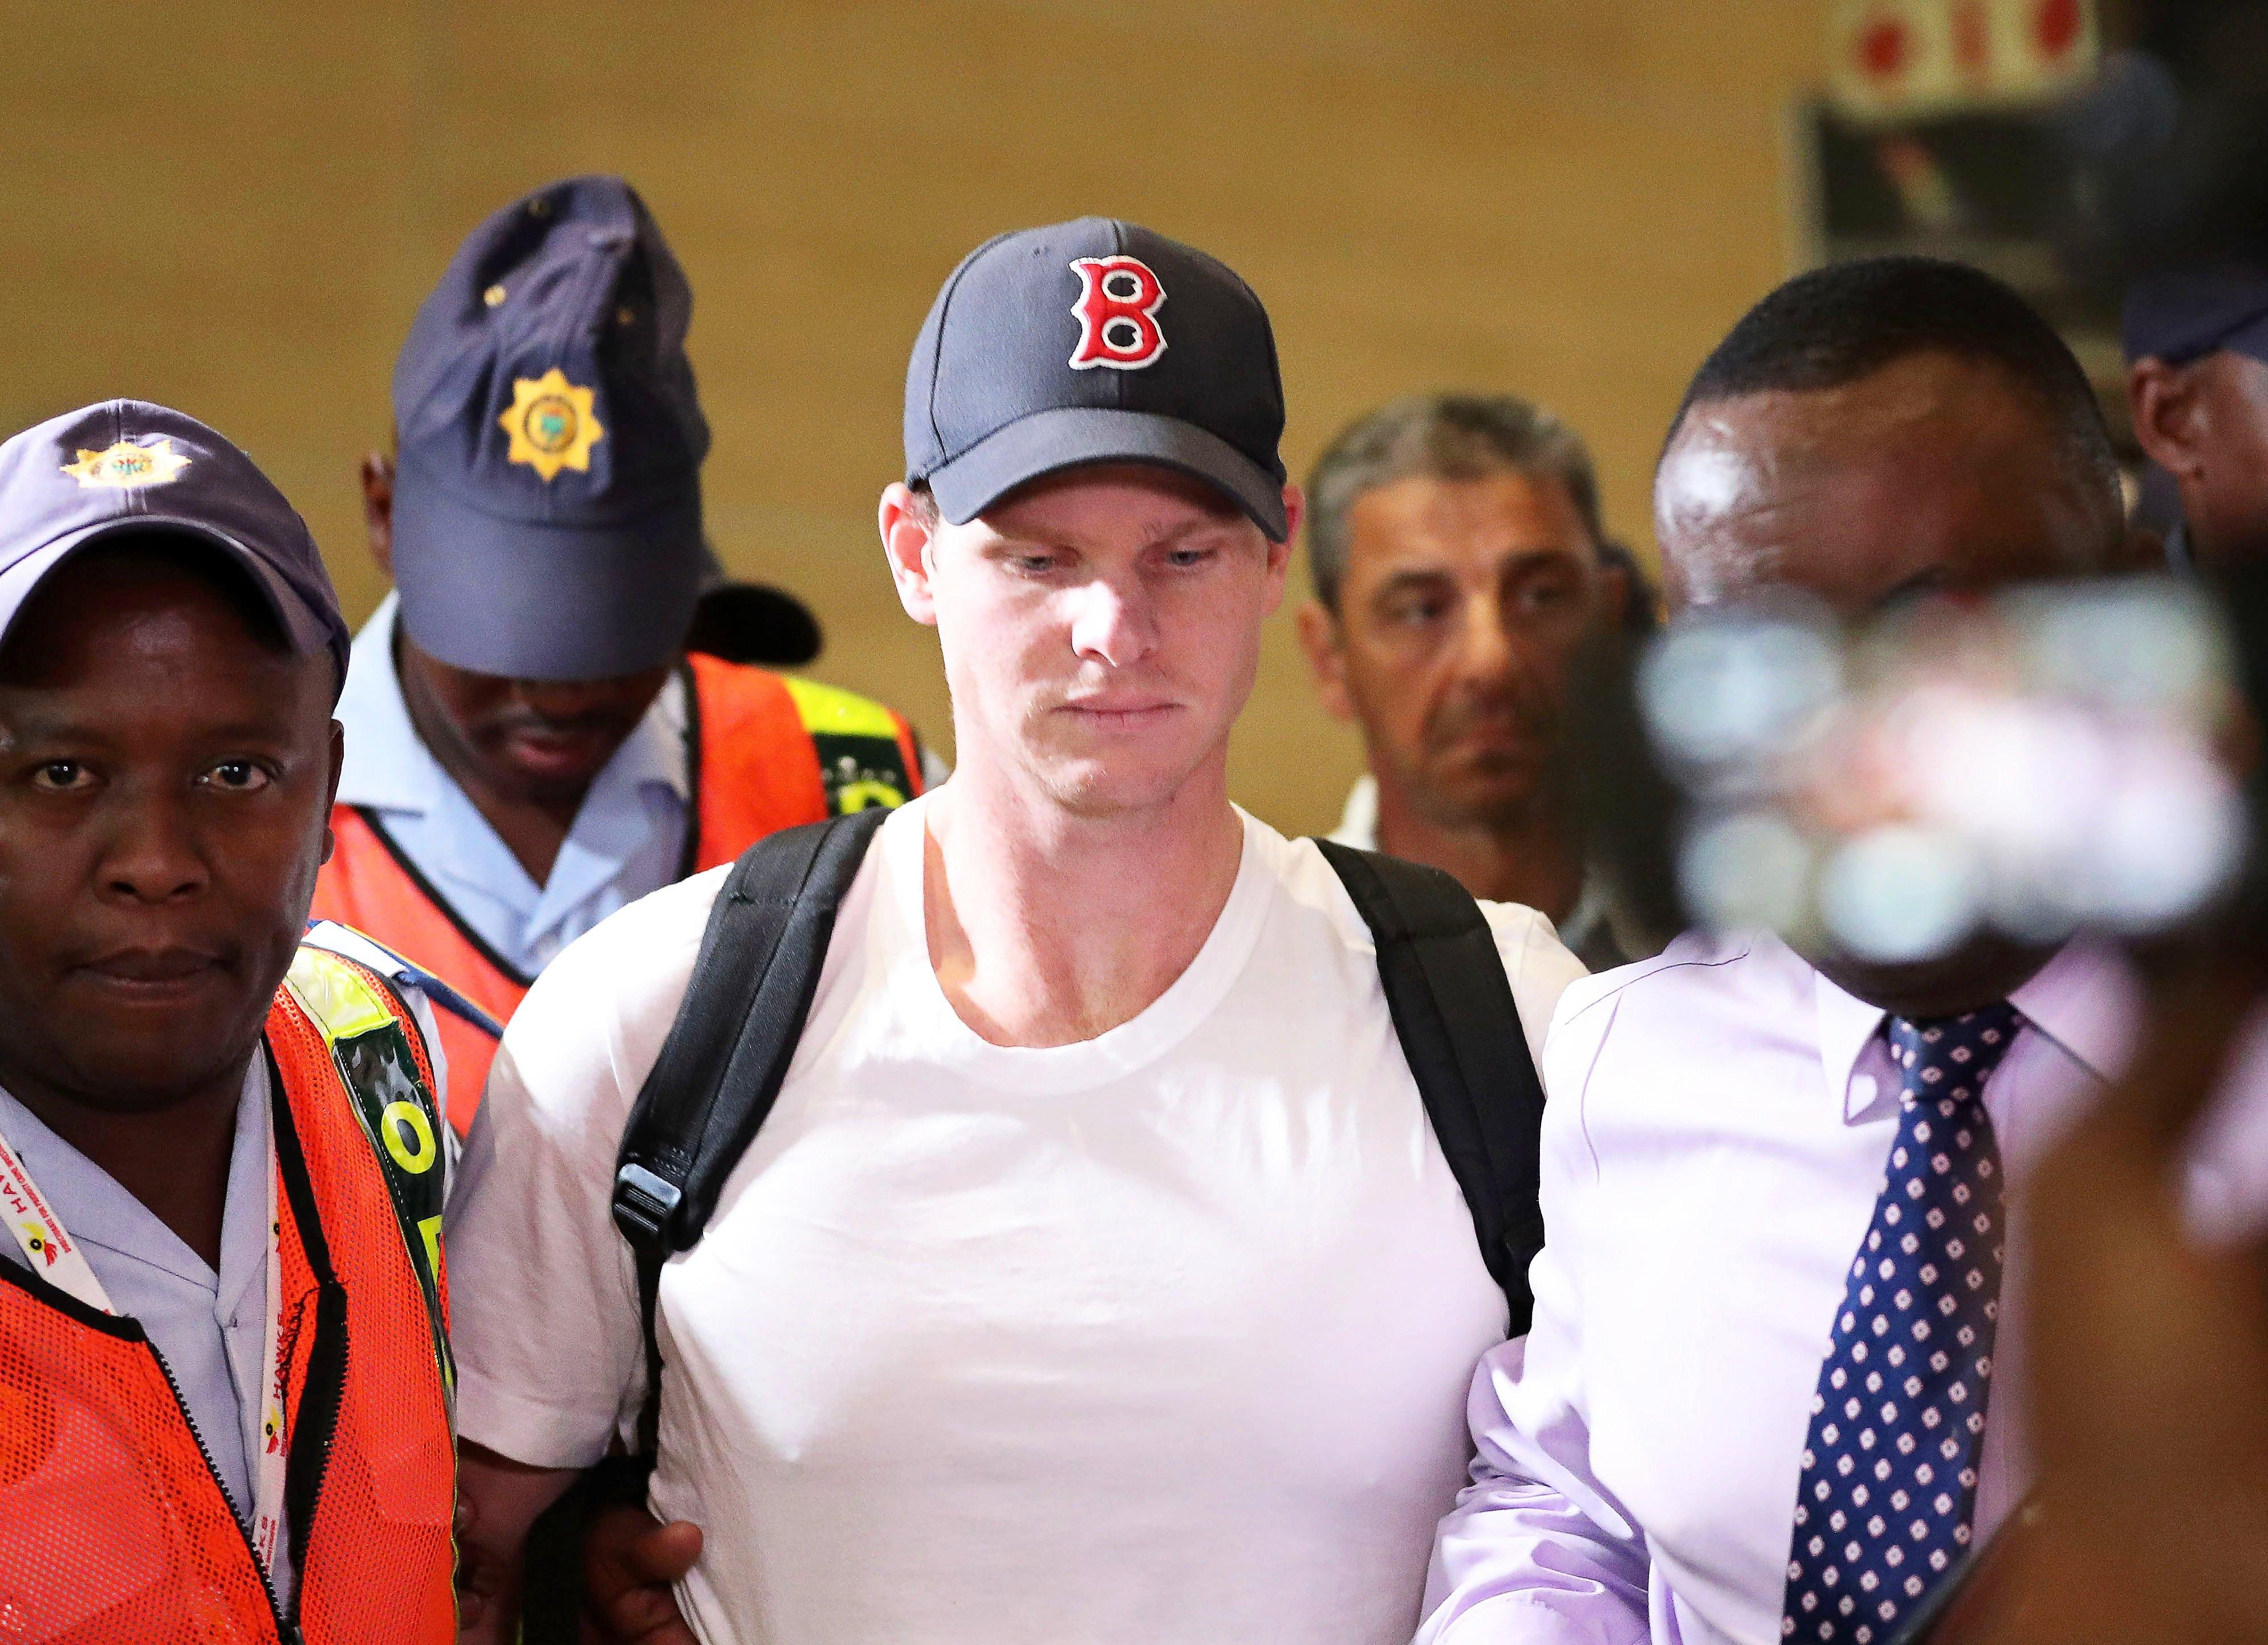 Steve Smith and David Warner are set to lose out on £4.5million